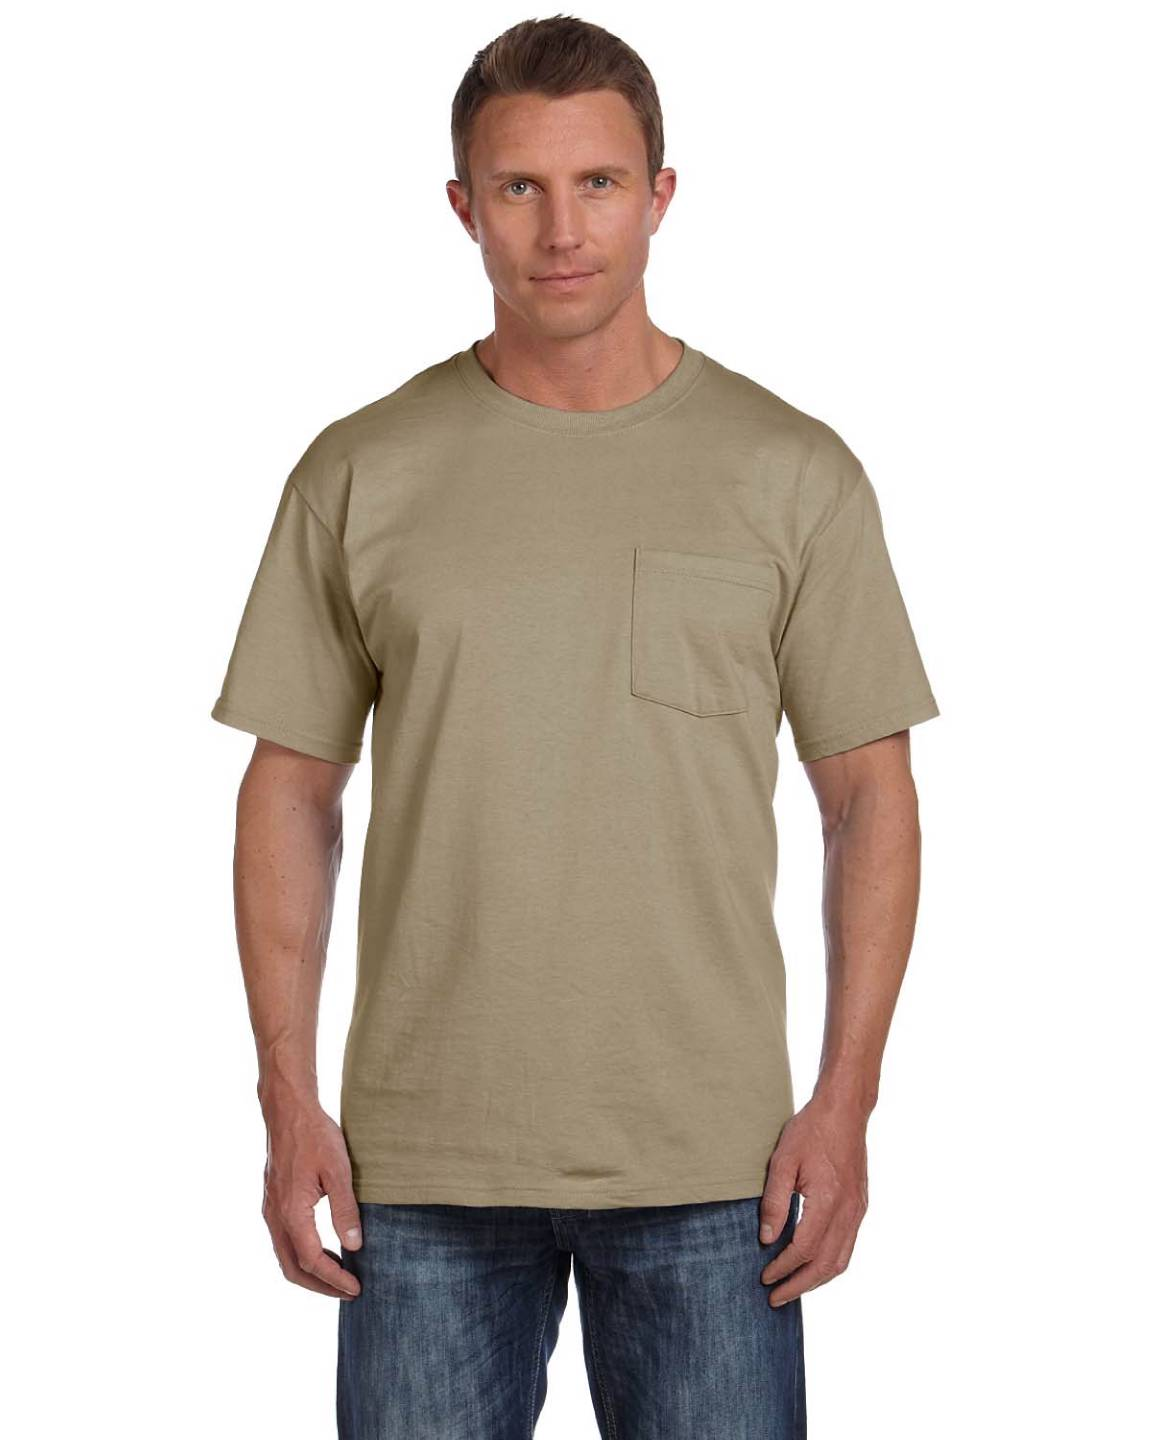 The best cotton, extra long and a neat fit. Extra long High quality Best service Extra long T-shirts Extra long (longtail) T-shirts for under your dress shirt. Especially for taller men we have developed extra long (longtail) T-shirt to fit your body perfectly.